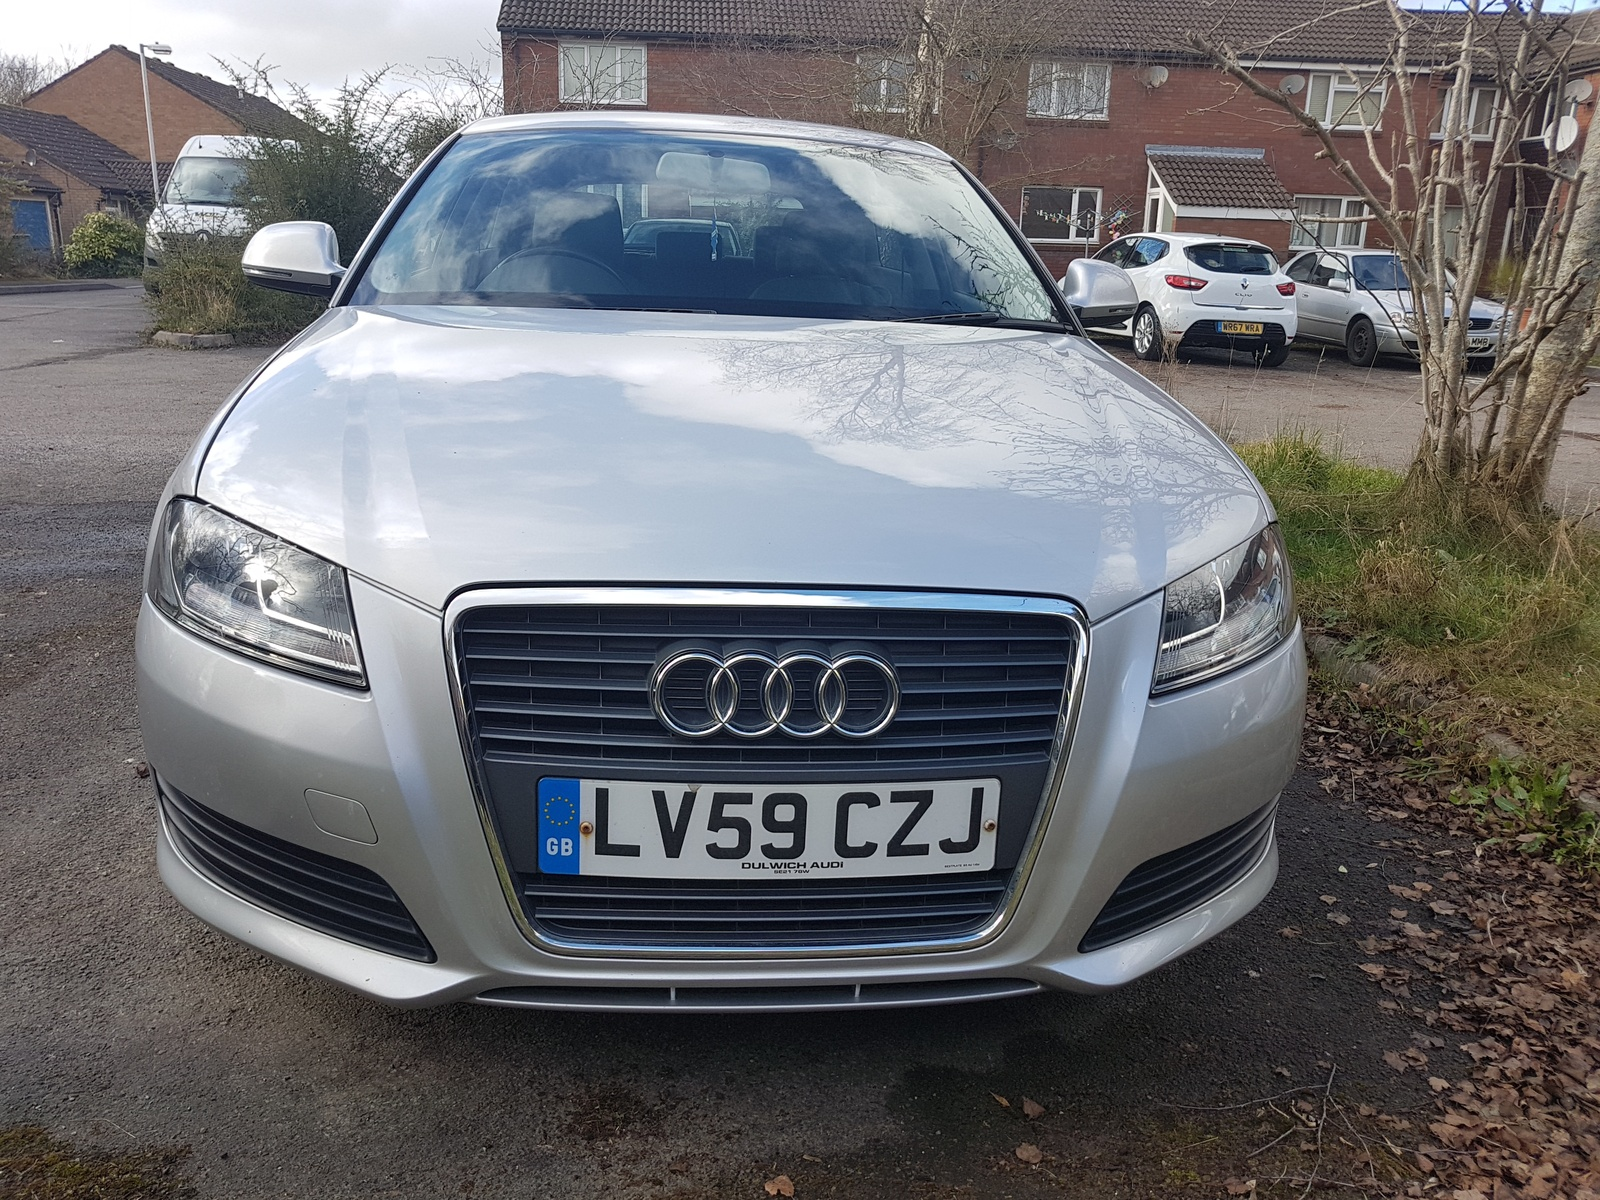 audi a3 questions – audi a3 2009 with low mileage for sale - cargurus